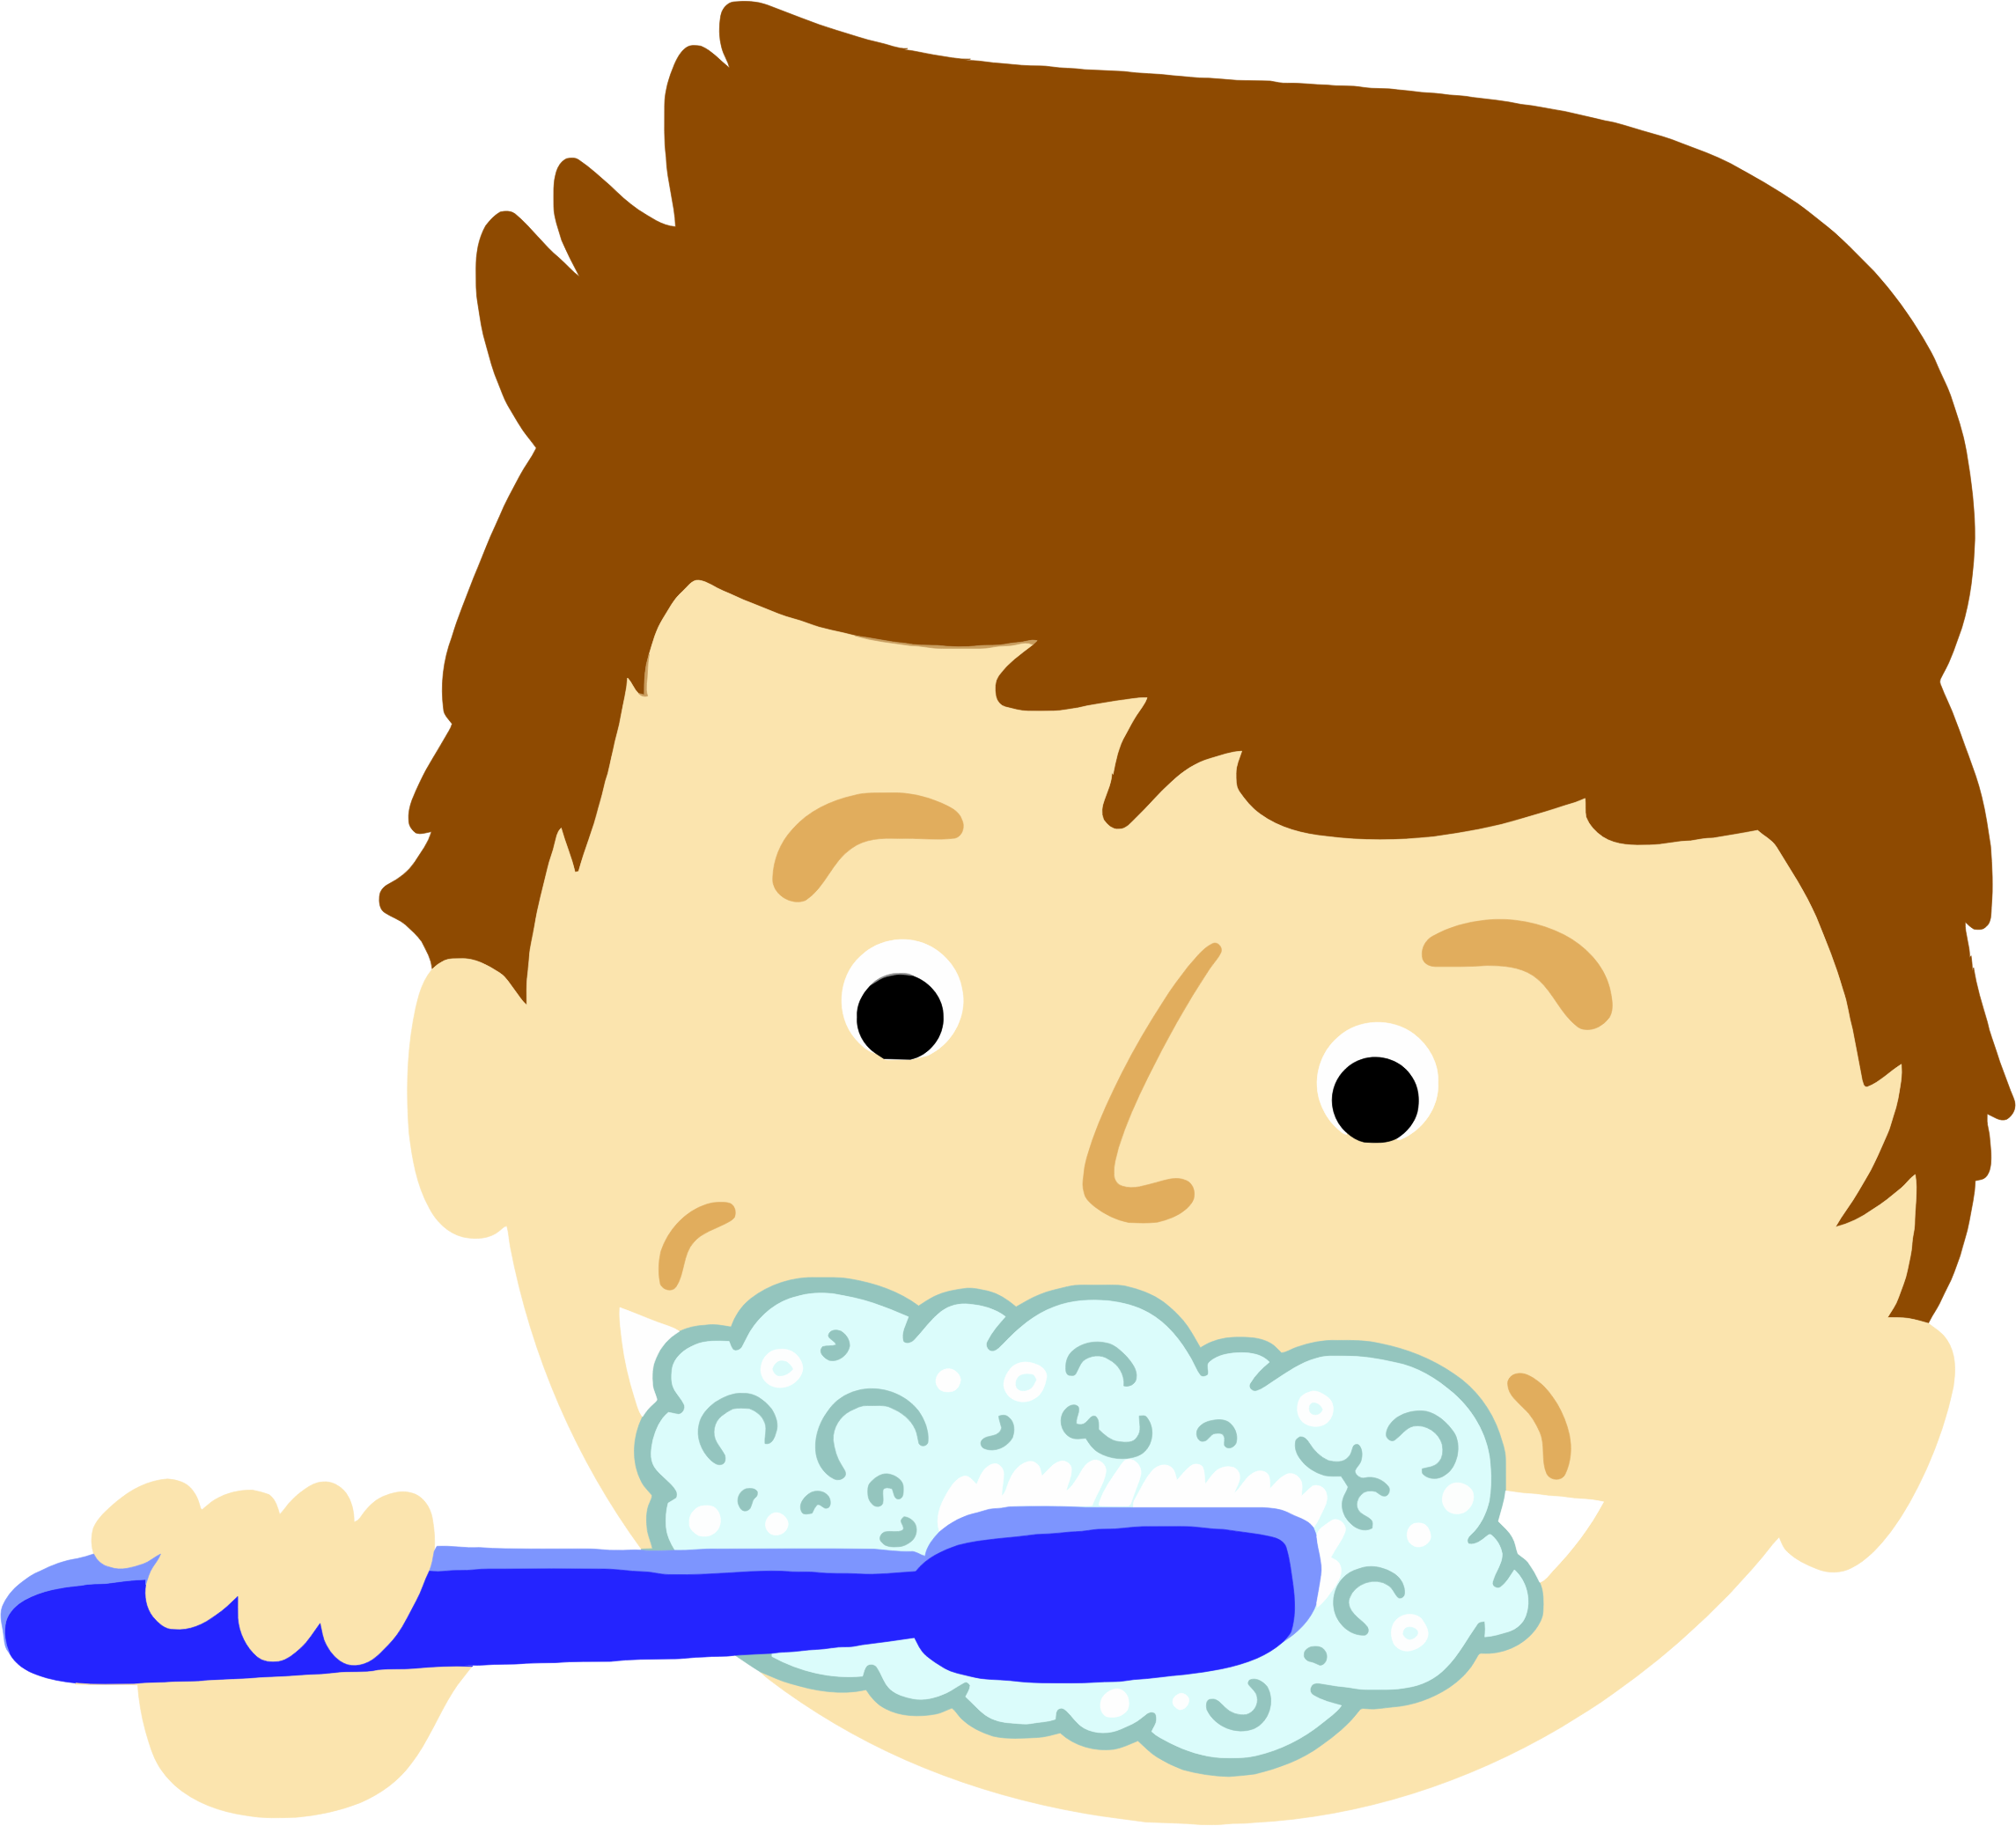 clipart boy brushing teeth rh openclipart org brush my teeth clipart brush teeth clipart black and white